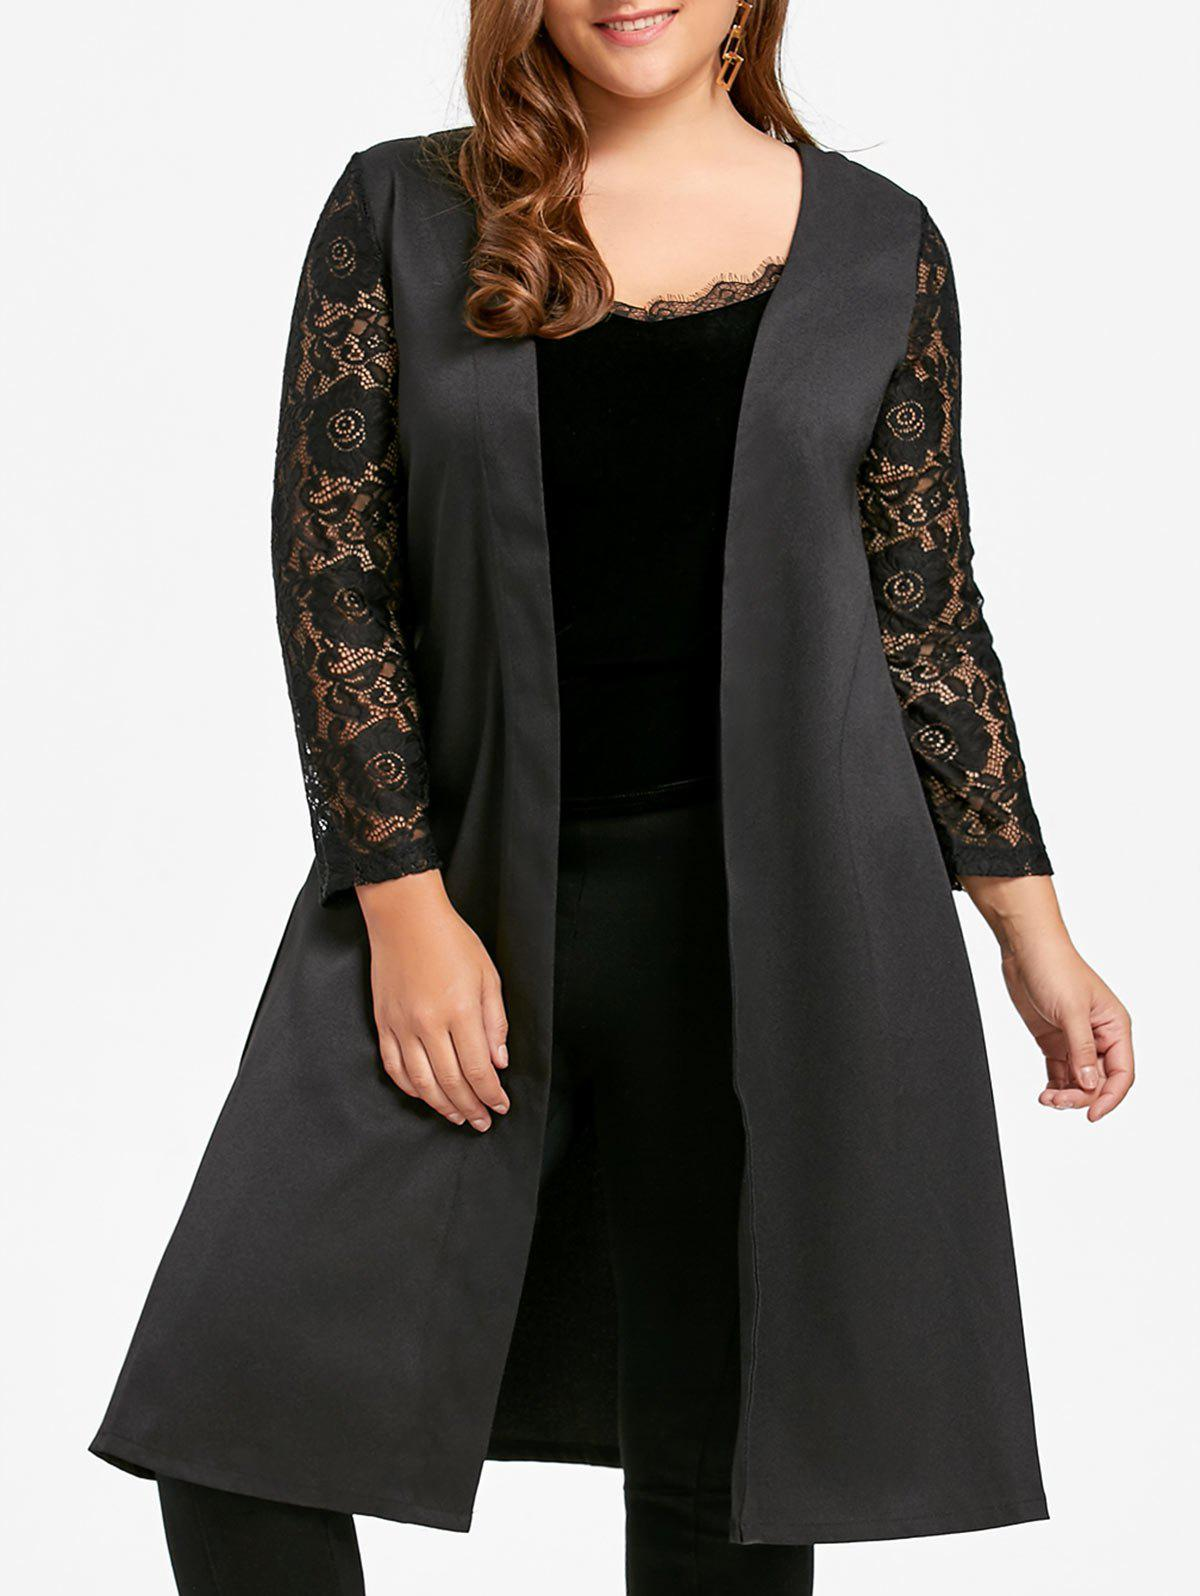 Lace Sleeve Plus Size Long Trench CoatWOMEN<br><br>Size: 7XL; Color: BLACK; Clothes Type: Trench; Material: Polyester; Type: Slim; Shirt Length: Long; Sleeve Length: Full; Collar: Collarless; Pattern Type: Solid; Embellishment: Lace,Panel; Style: Fashion; Season: Fall,Spring,Winter; Weight: 0.4000kg; Package Contents: 1 x Coat;